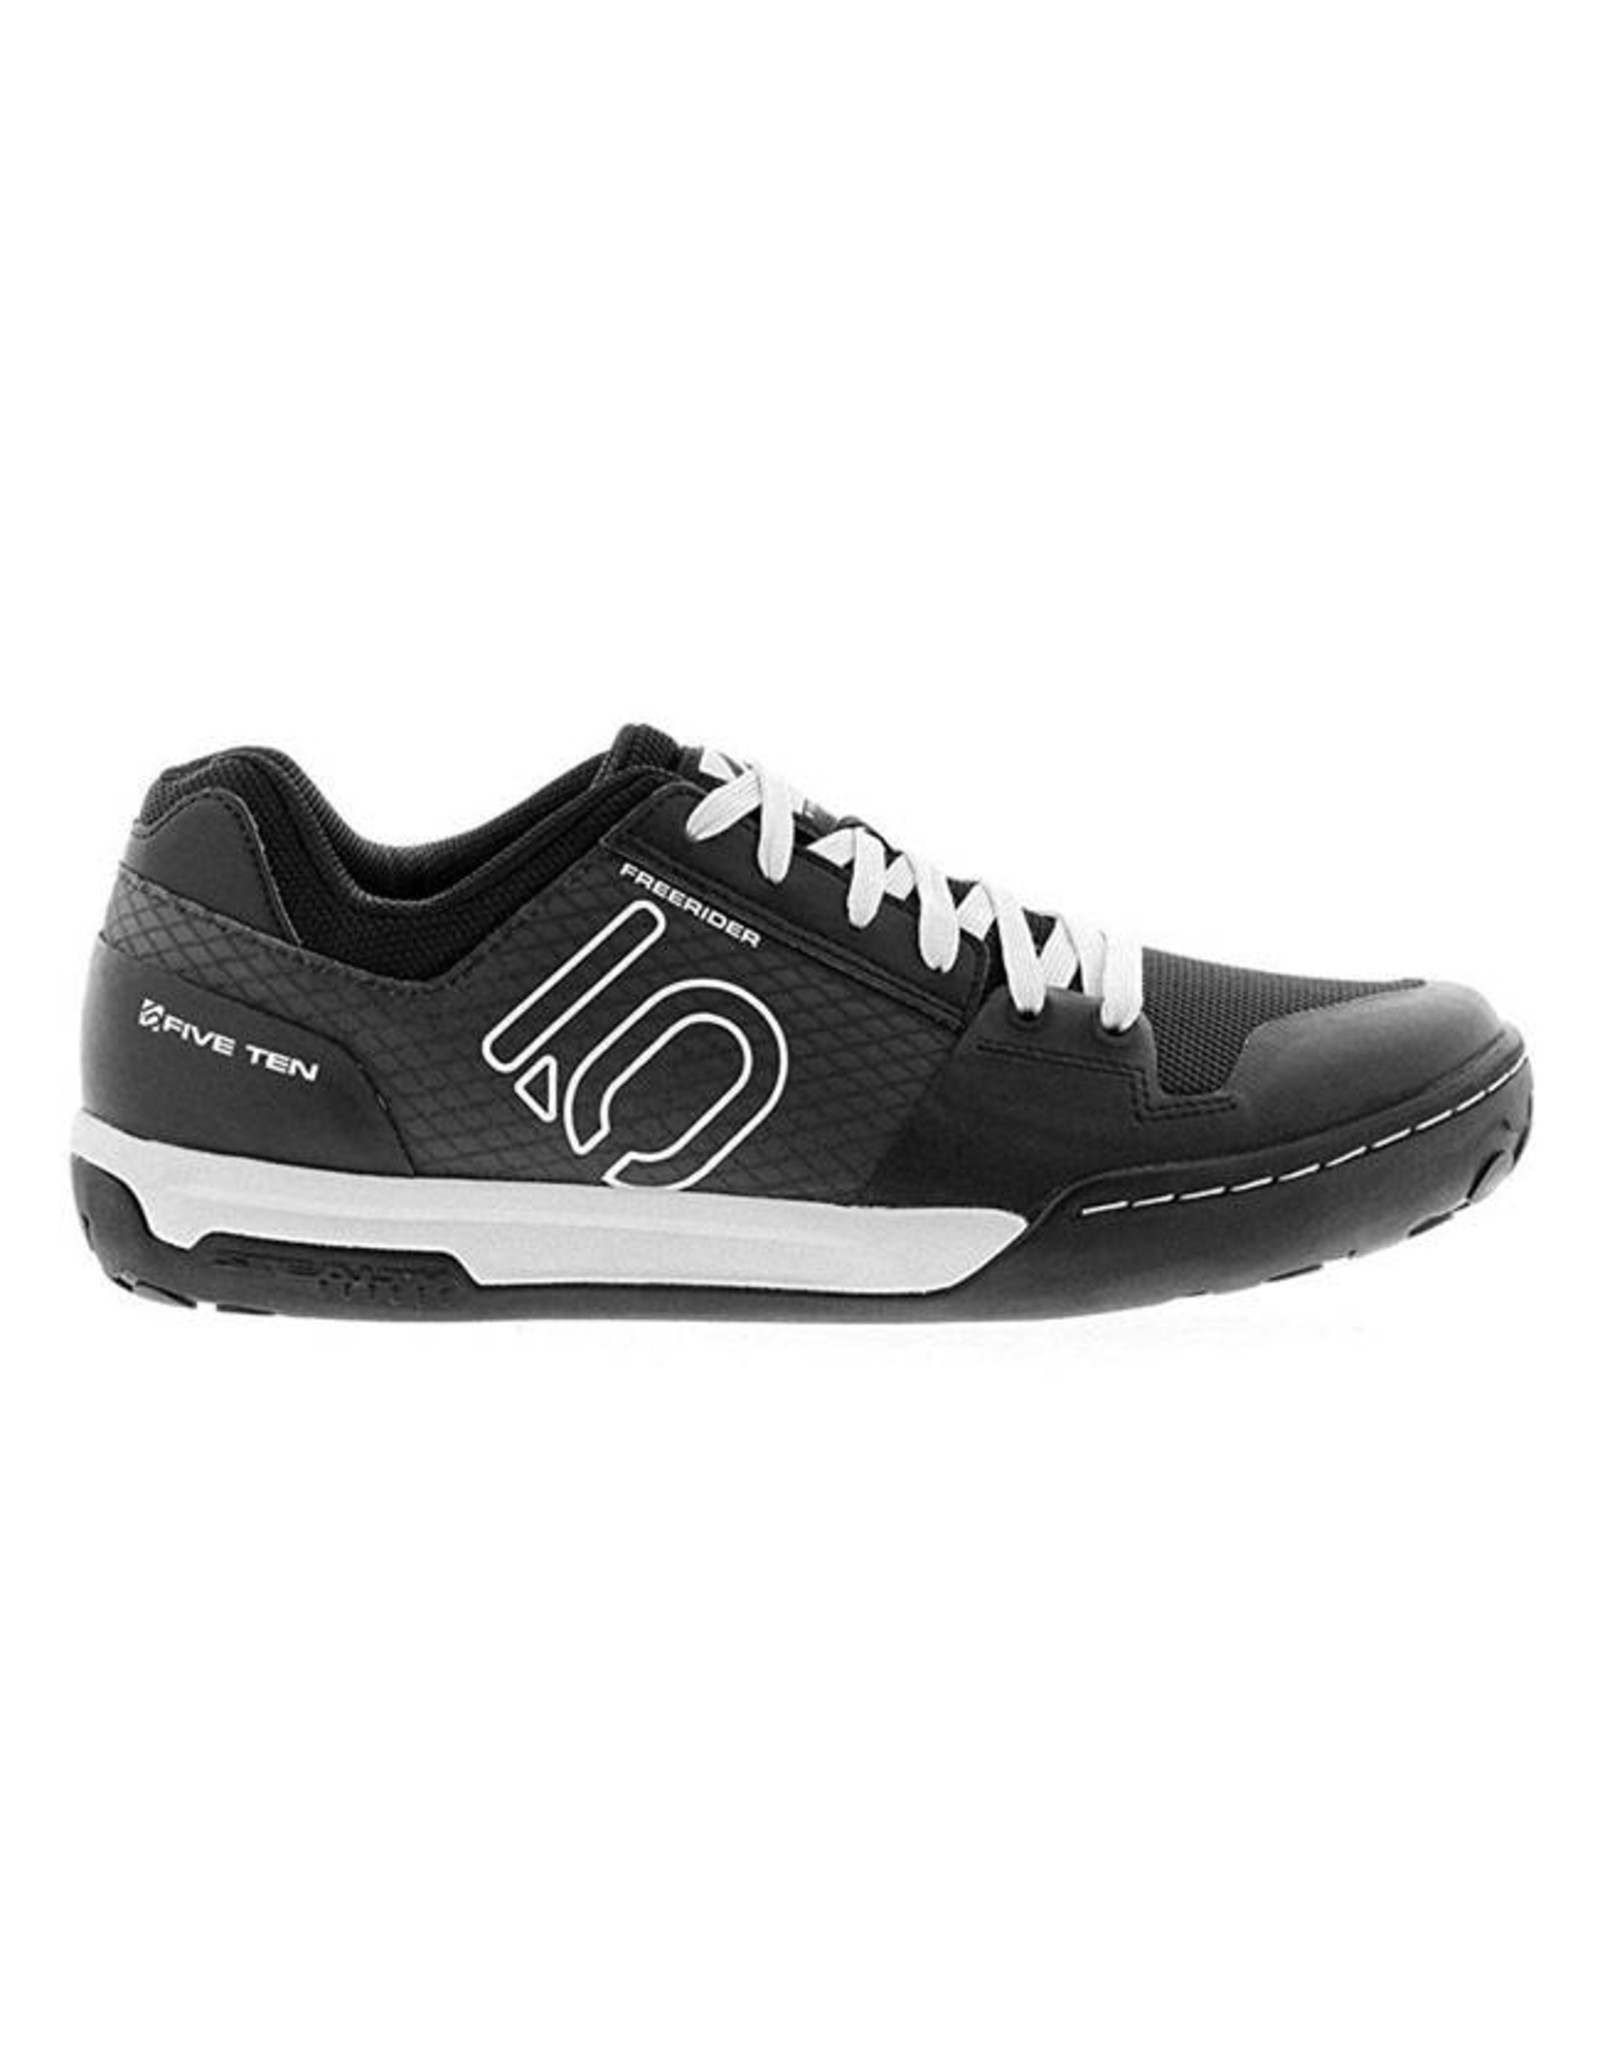 Five Ten Five Ten Freerider Contact Men's Flat Pedal Shoe: Split Black 11